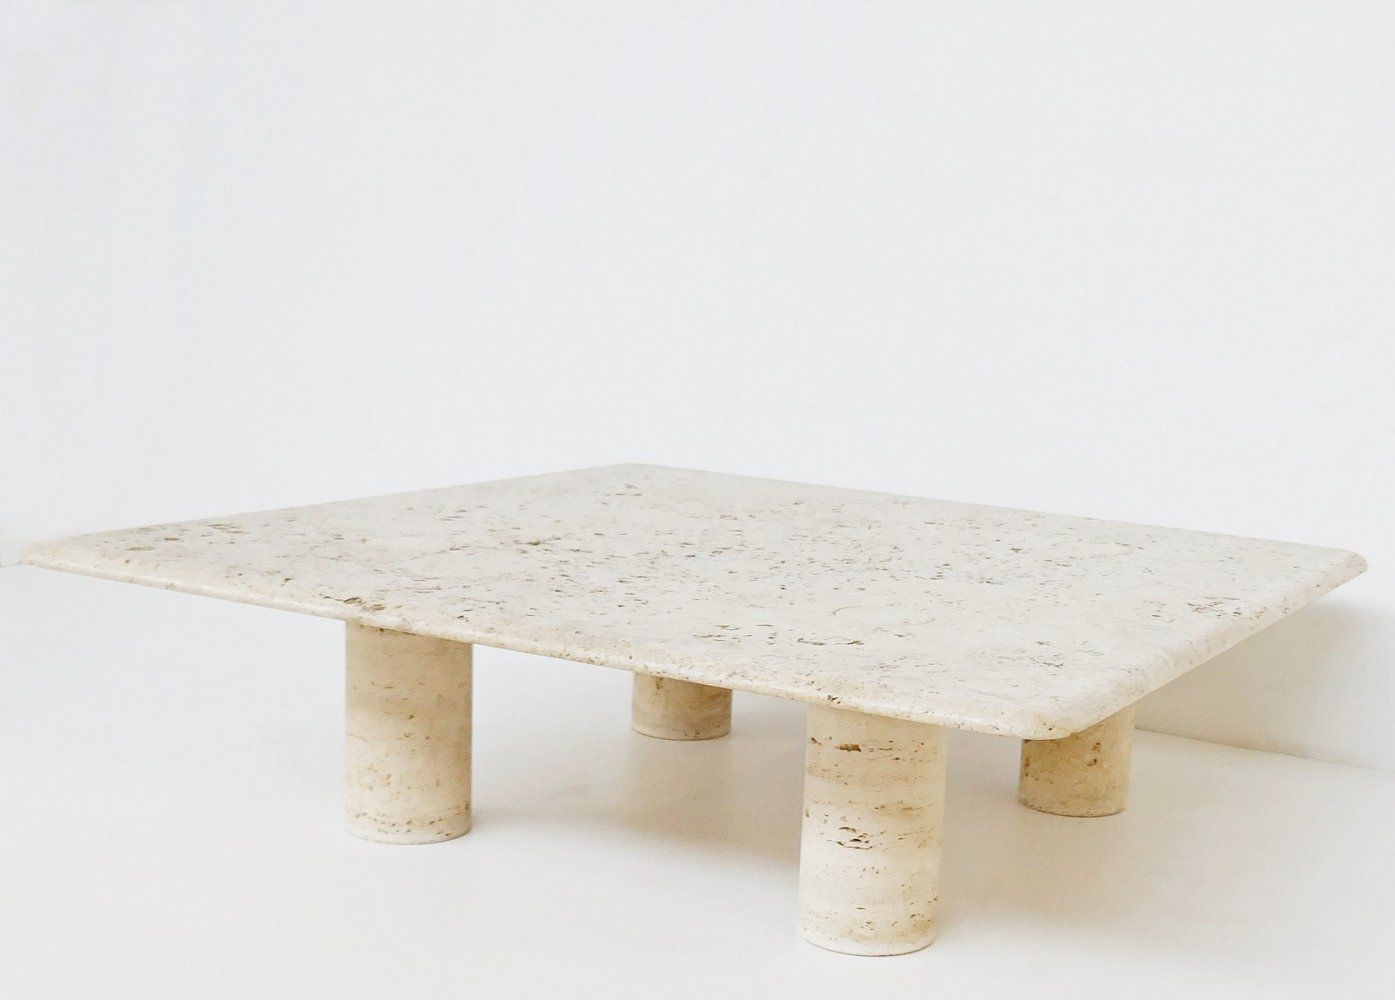 For Sale Large Travertine Coffee Table By Angelo Mangiarotti For Up Amp Up Italy 1970s Travertine Coffee Table Coffee Table Marble Coffee Table